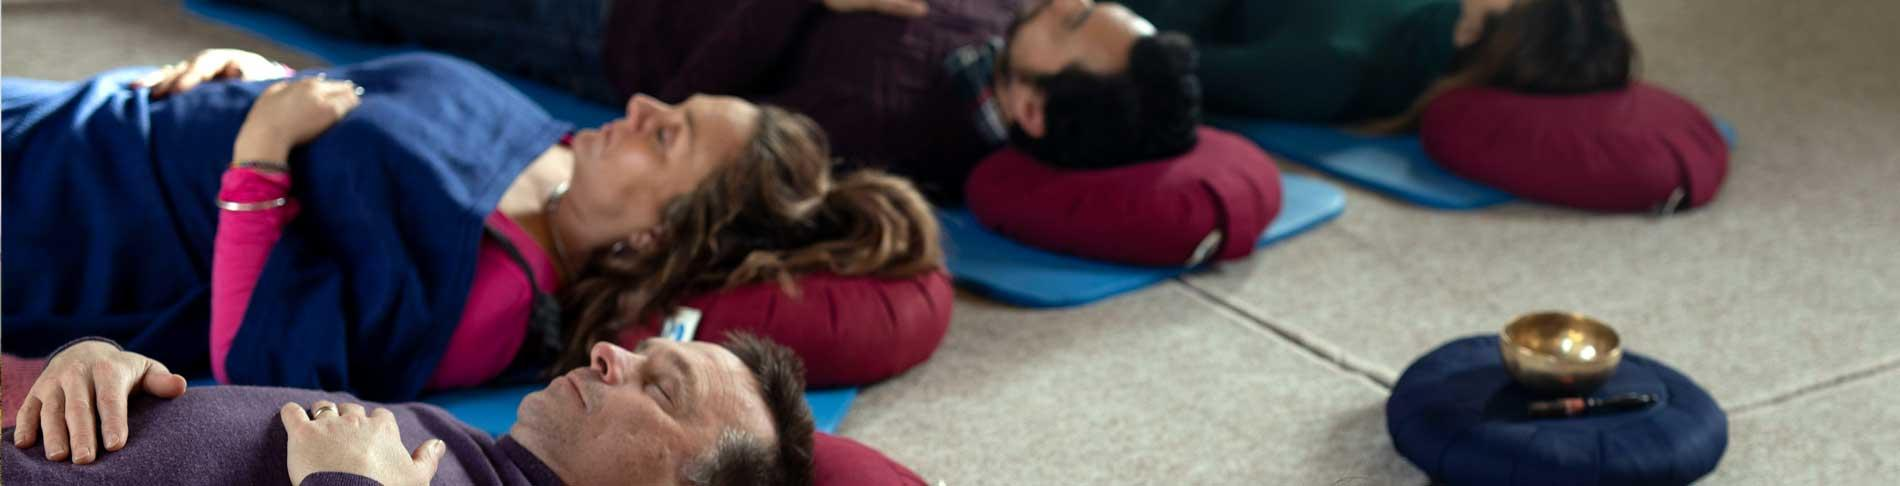 Incorporate mindfulness principles into yoga at Sharpham